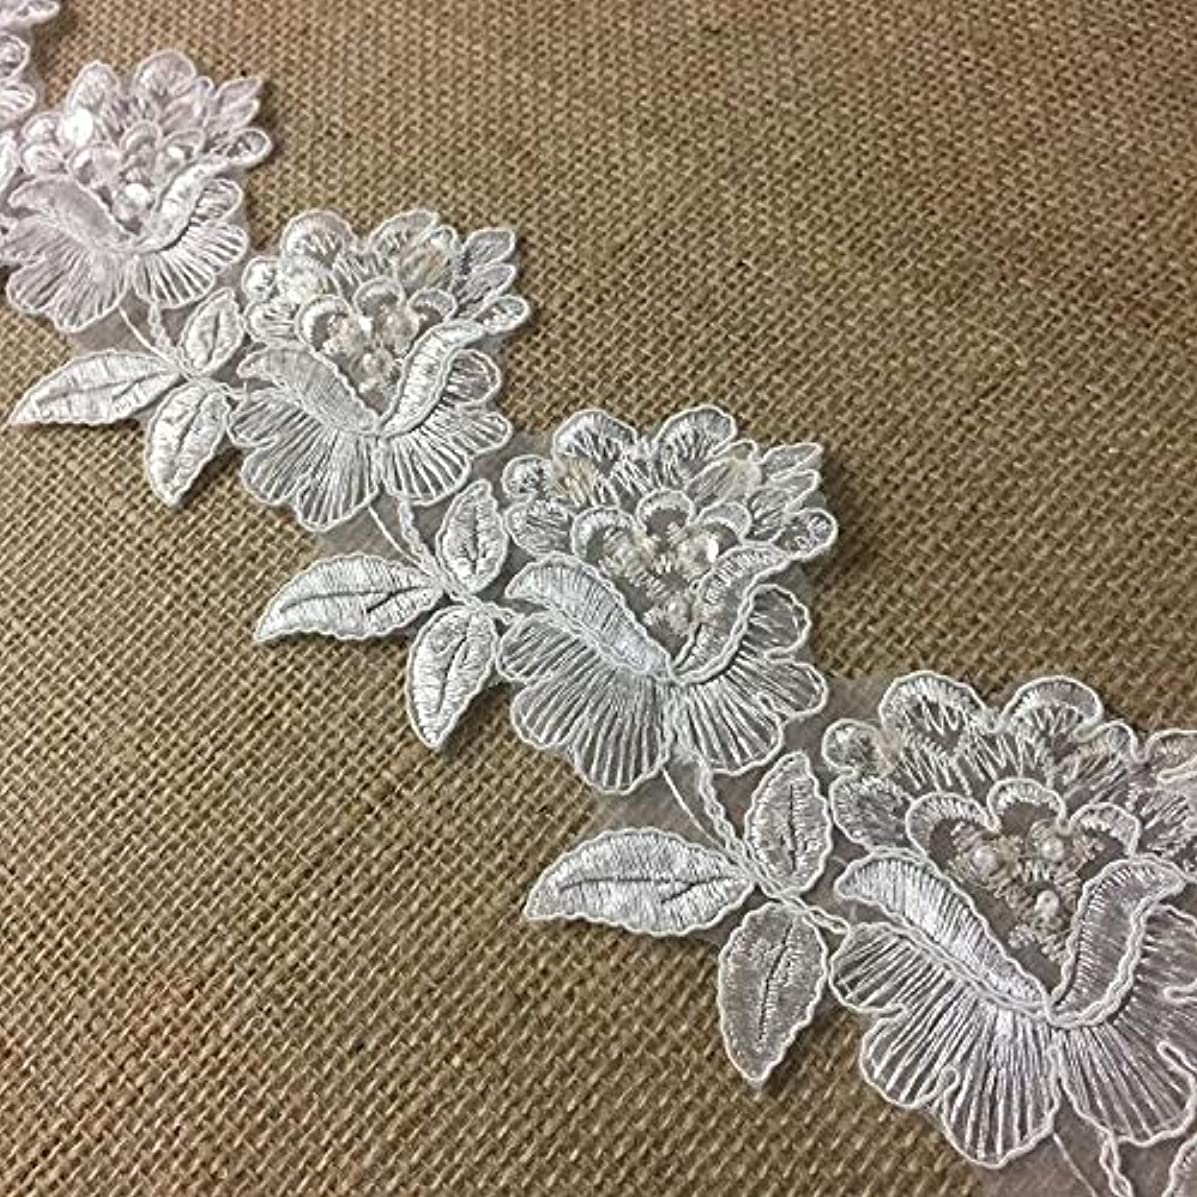 Bridal Veil Lace Trim Classic Rose Flower Design Alencon Hand Beaded Sequined Corded Embroidered Organza. 3